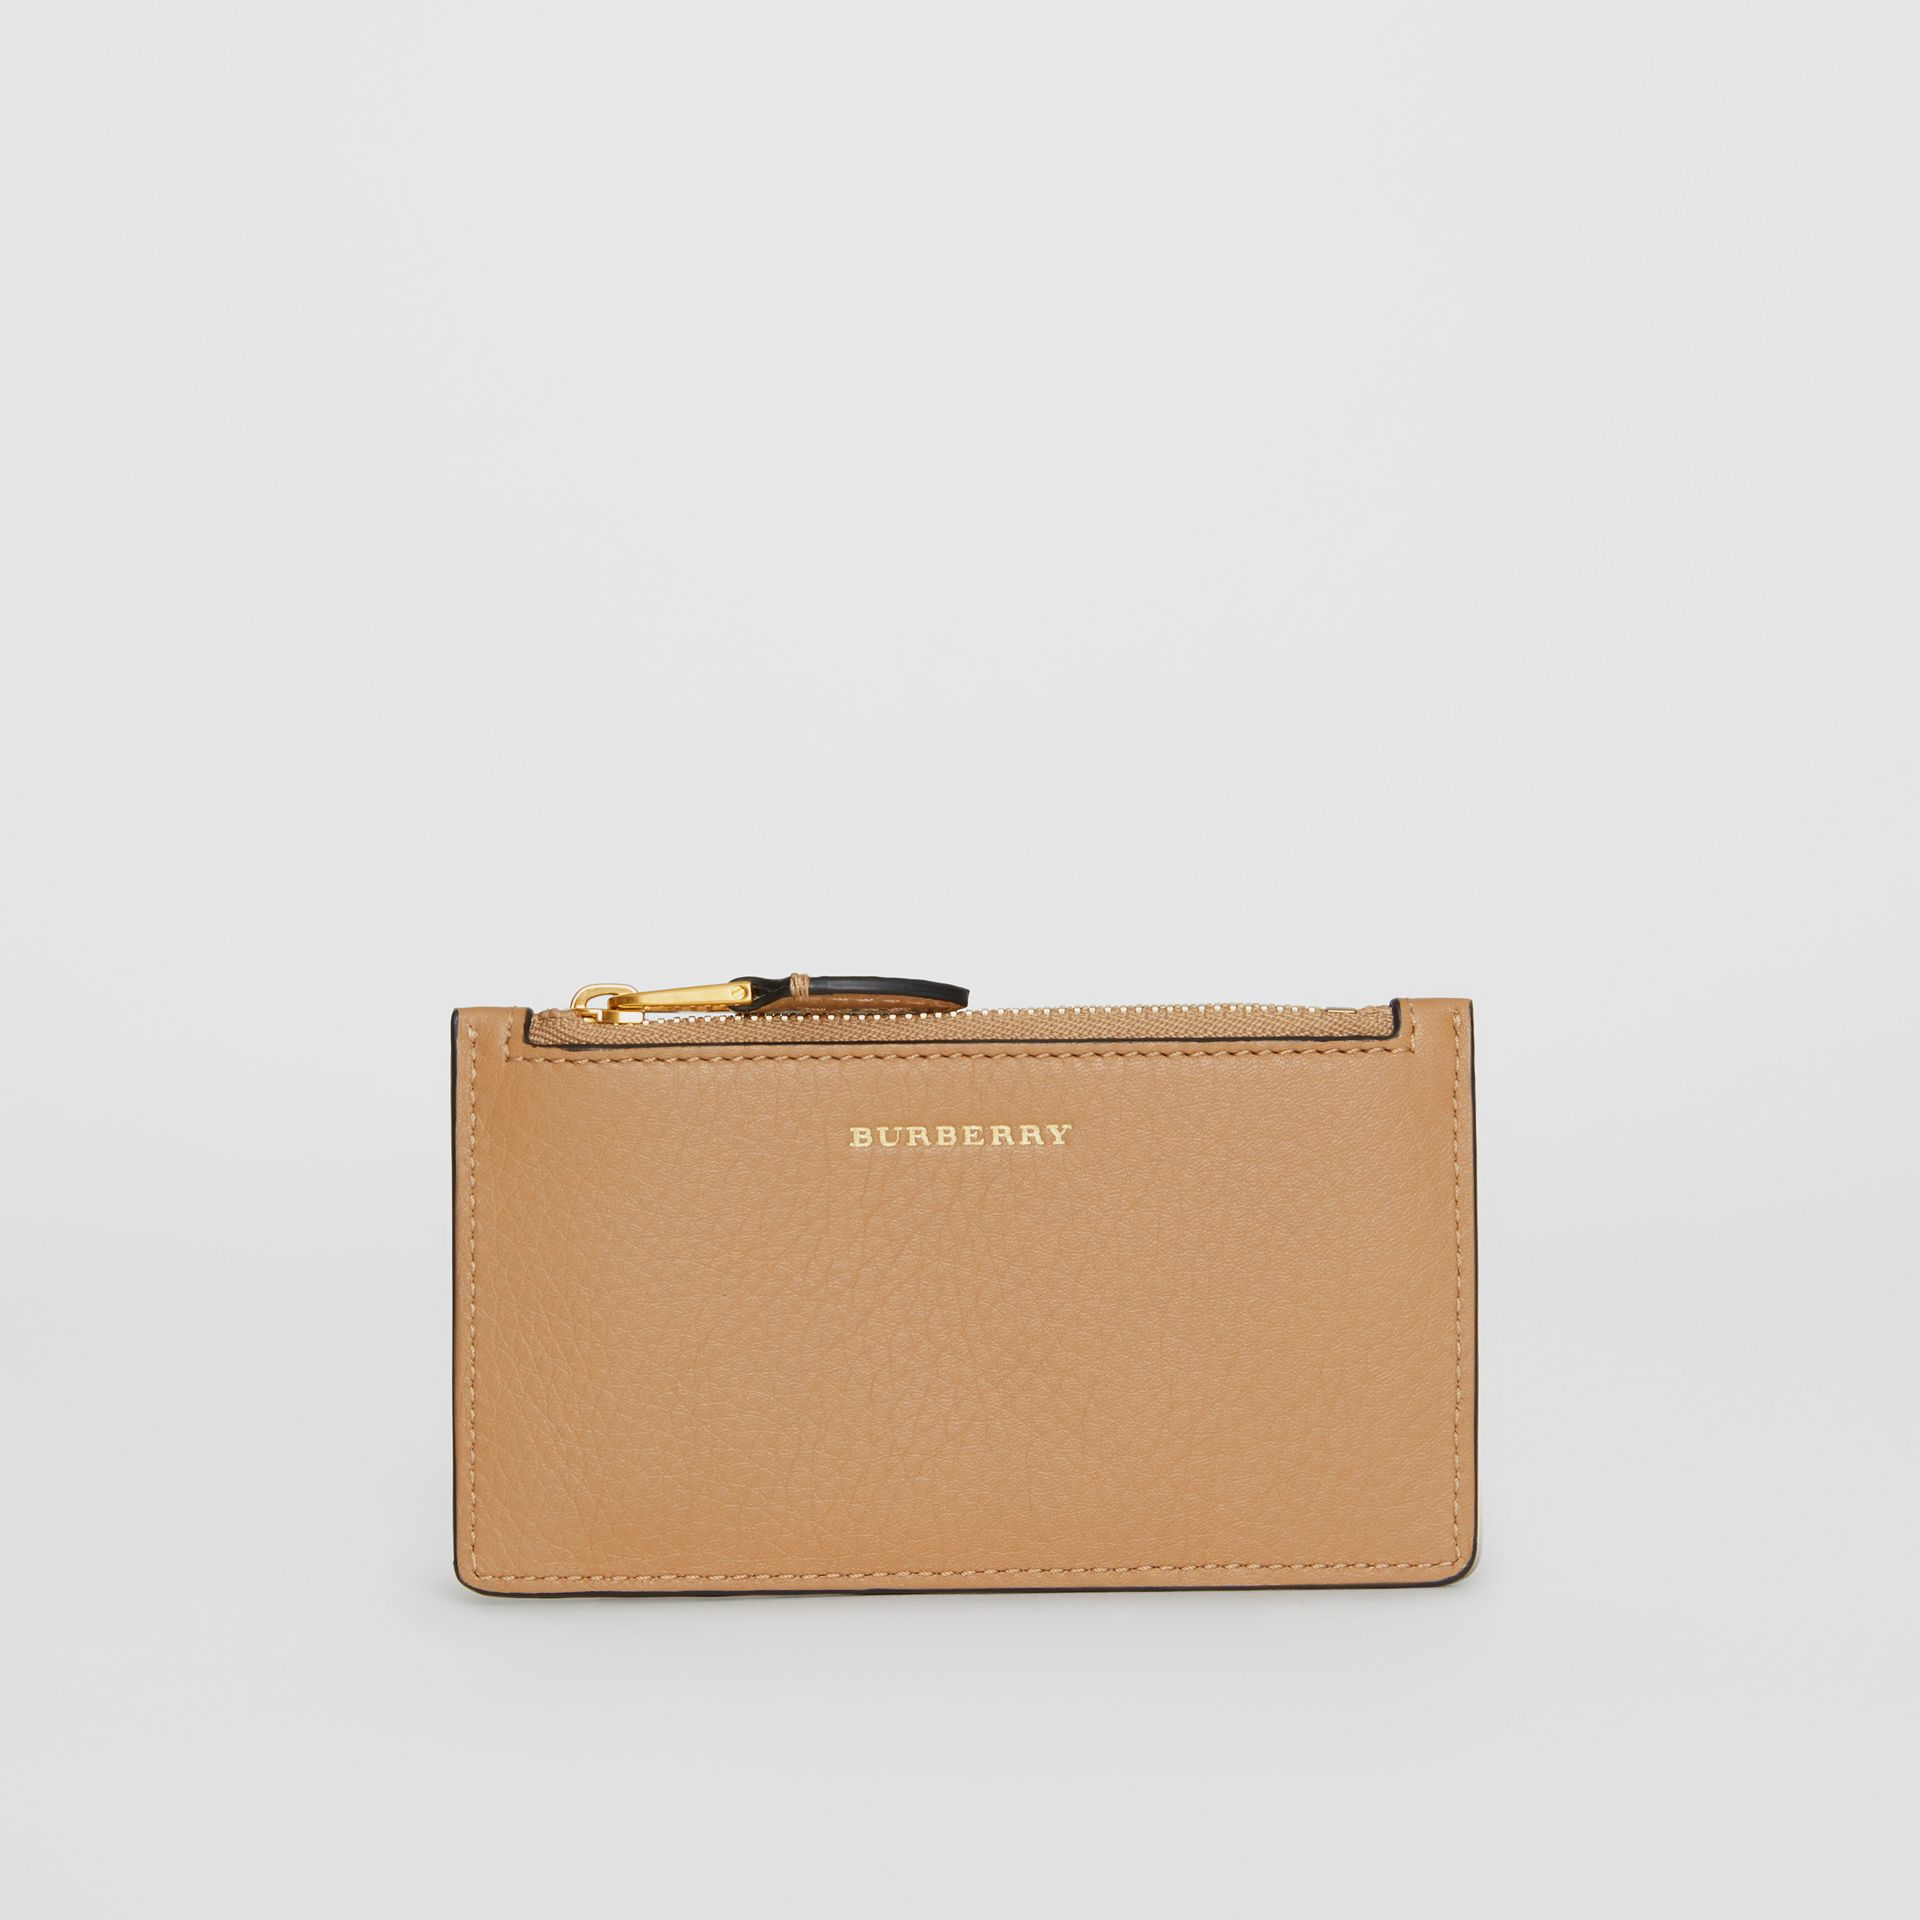 Two-tone Leather Card Case in Light Camel - Women | Burberry - gallery image 2